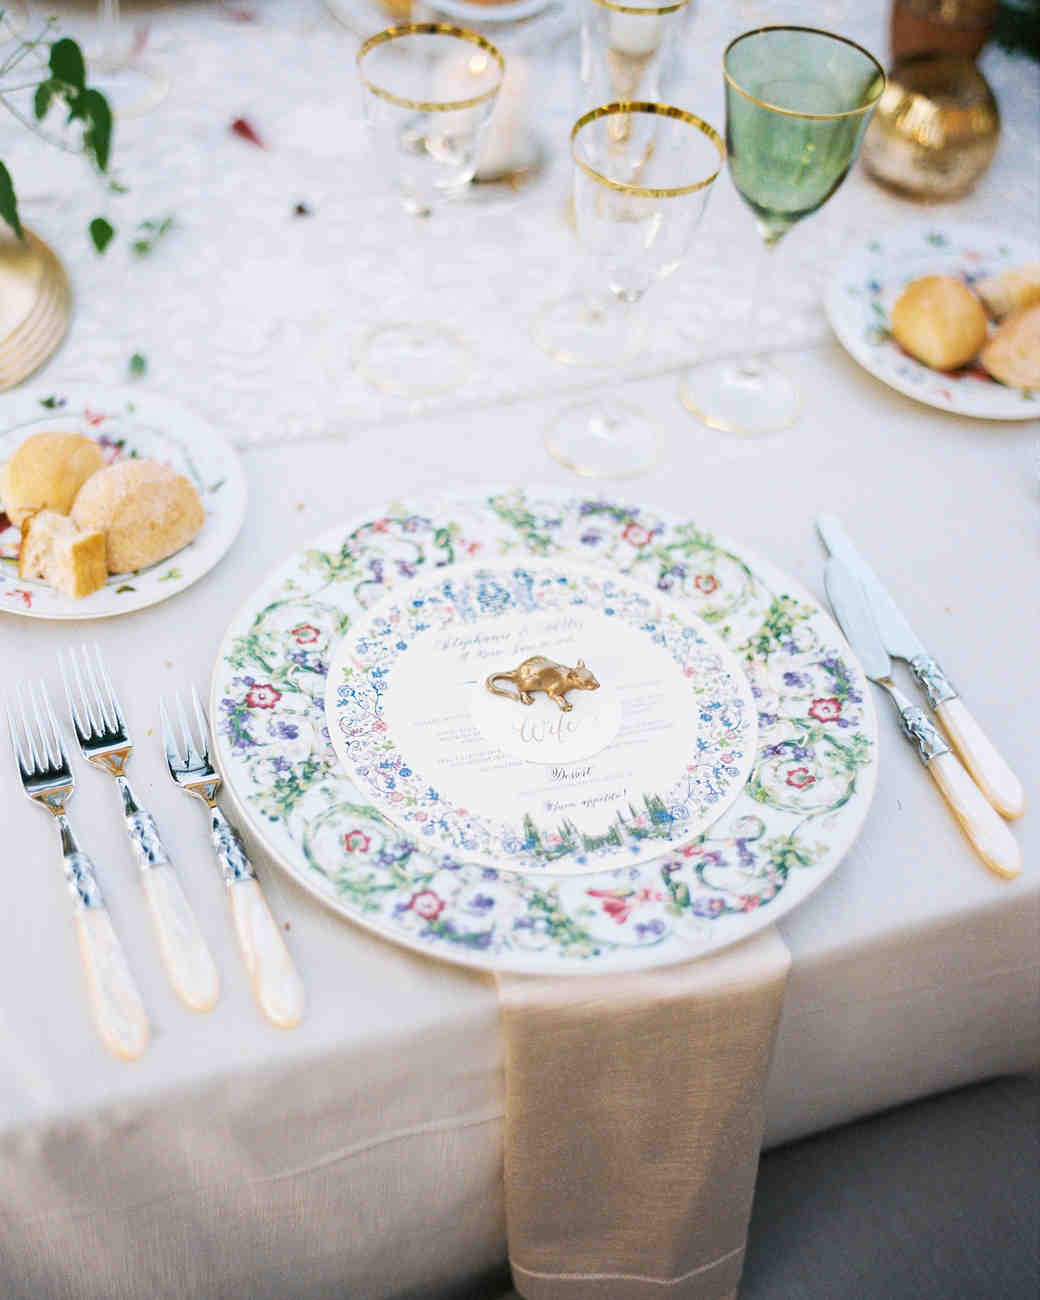 Diy Wedding Dishes: The Prettiest Place Settings From Real Celebrations